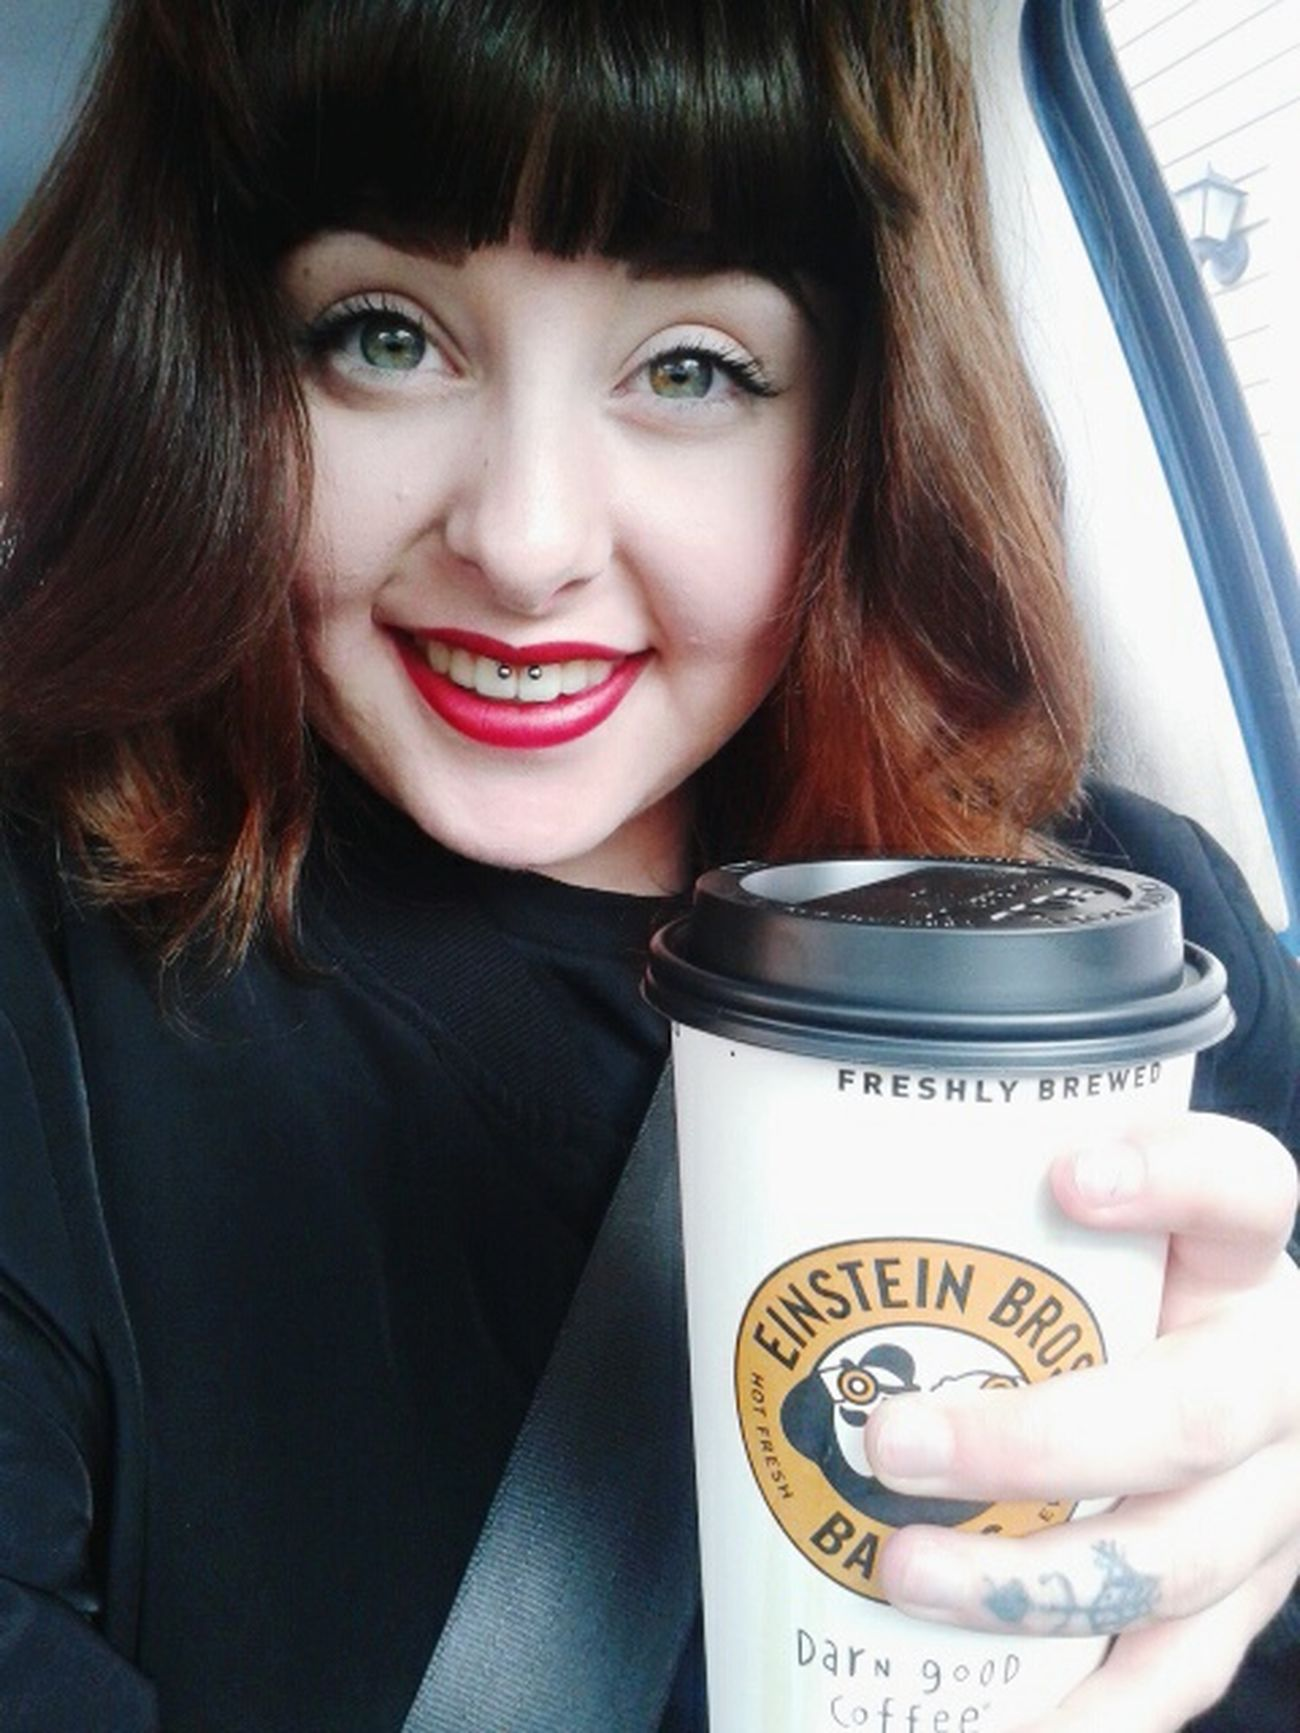 Shitty Day Smile Coffee Smiley Lipstick First Eyeem Photo